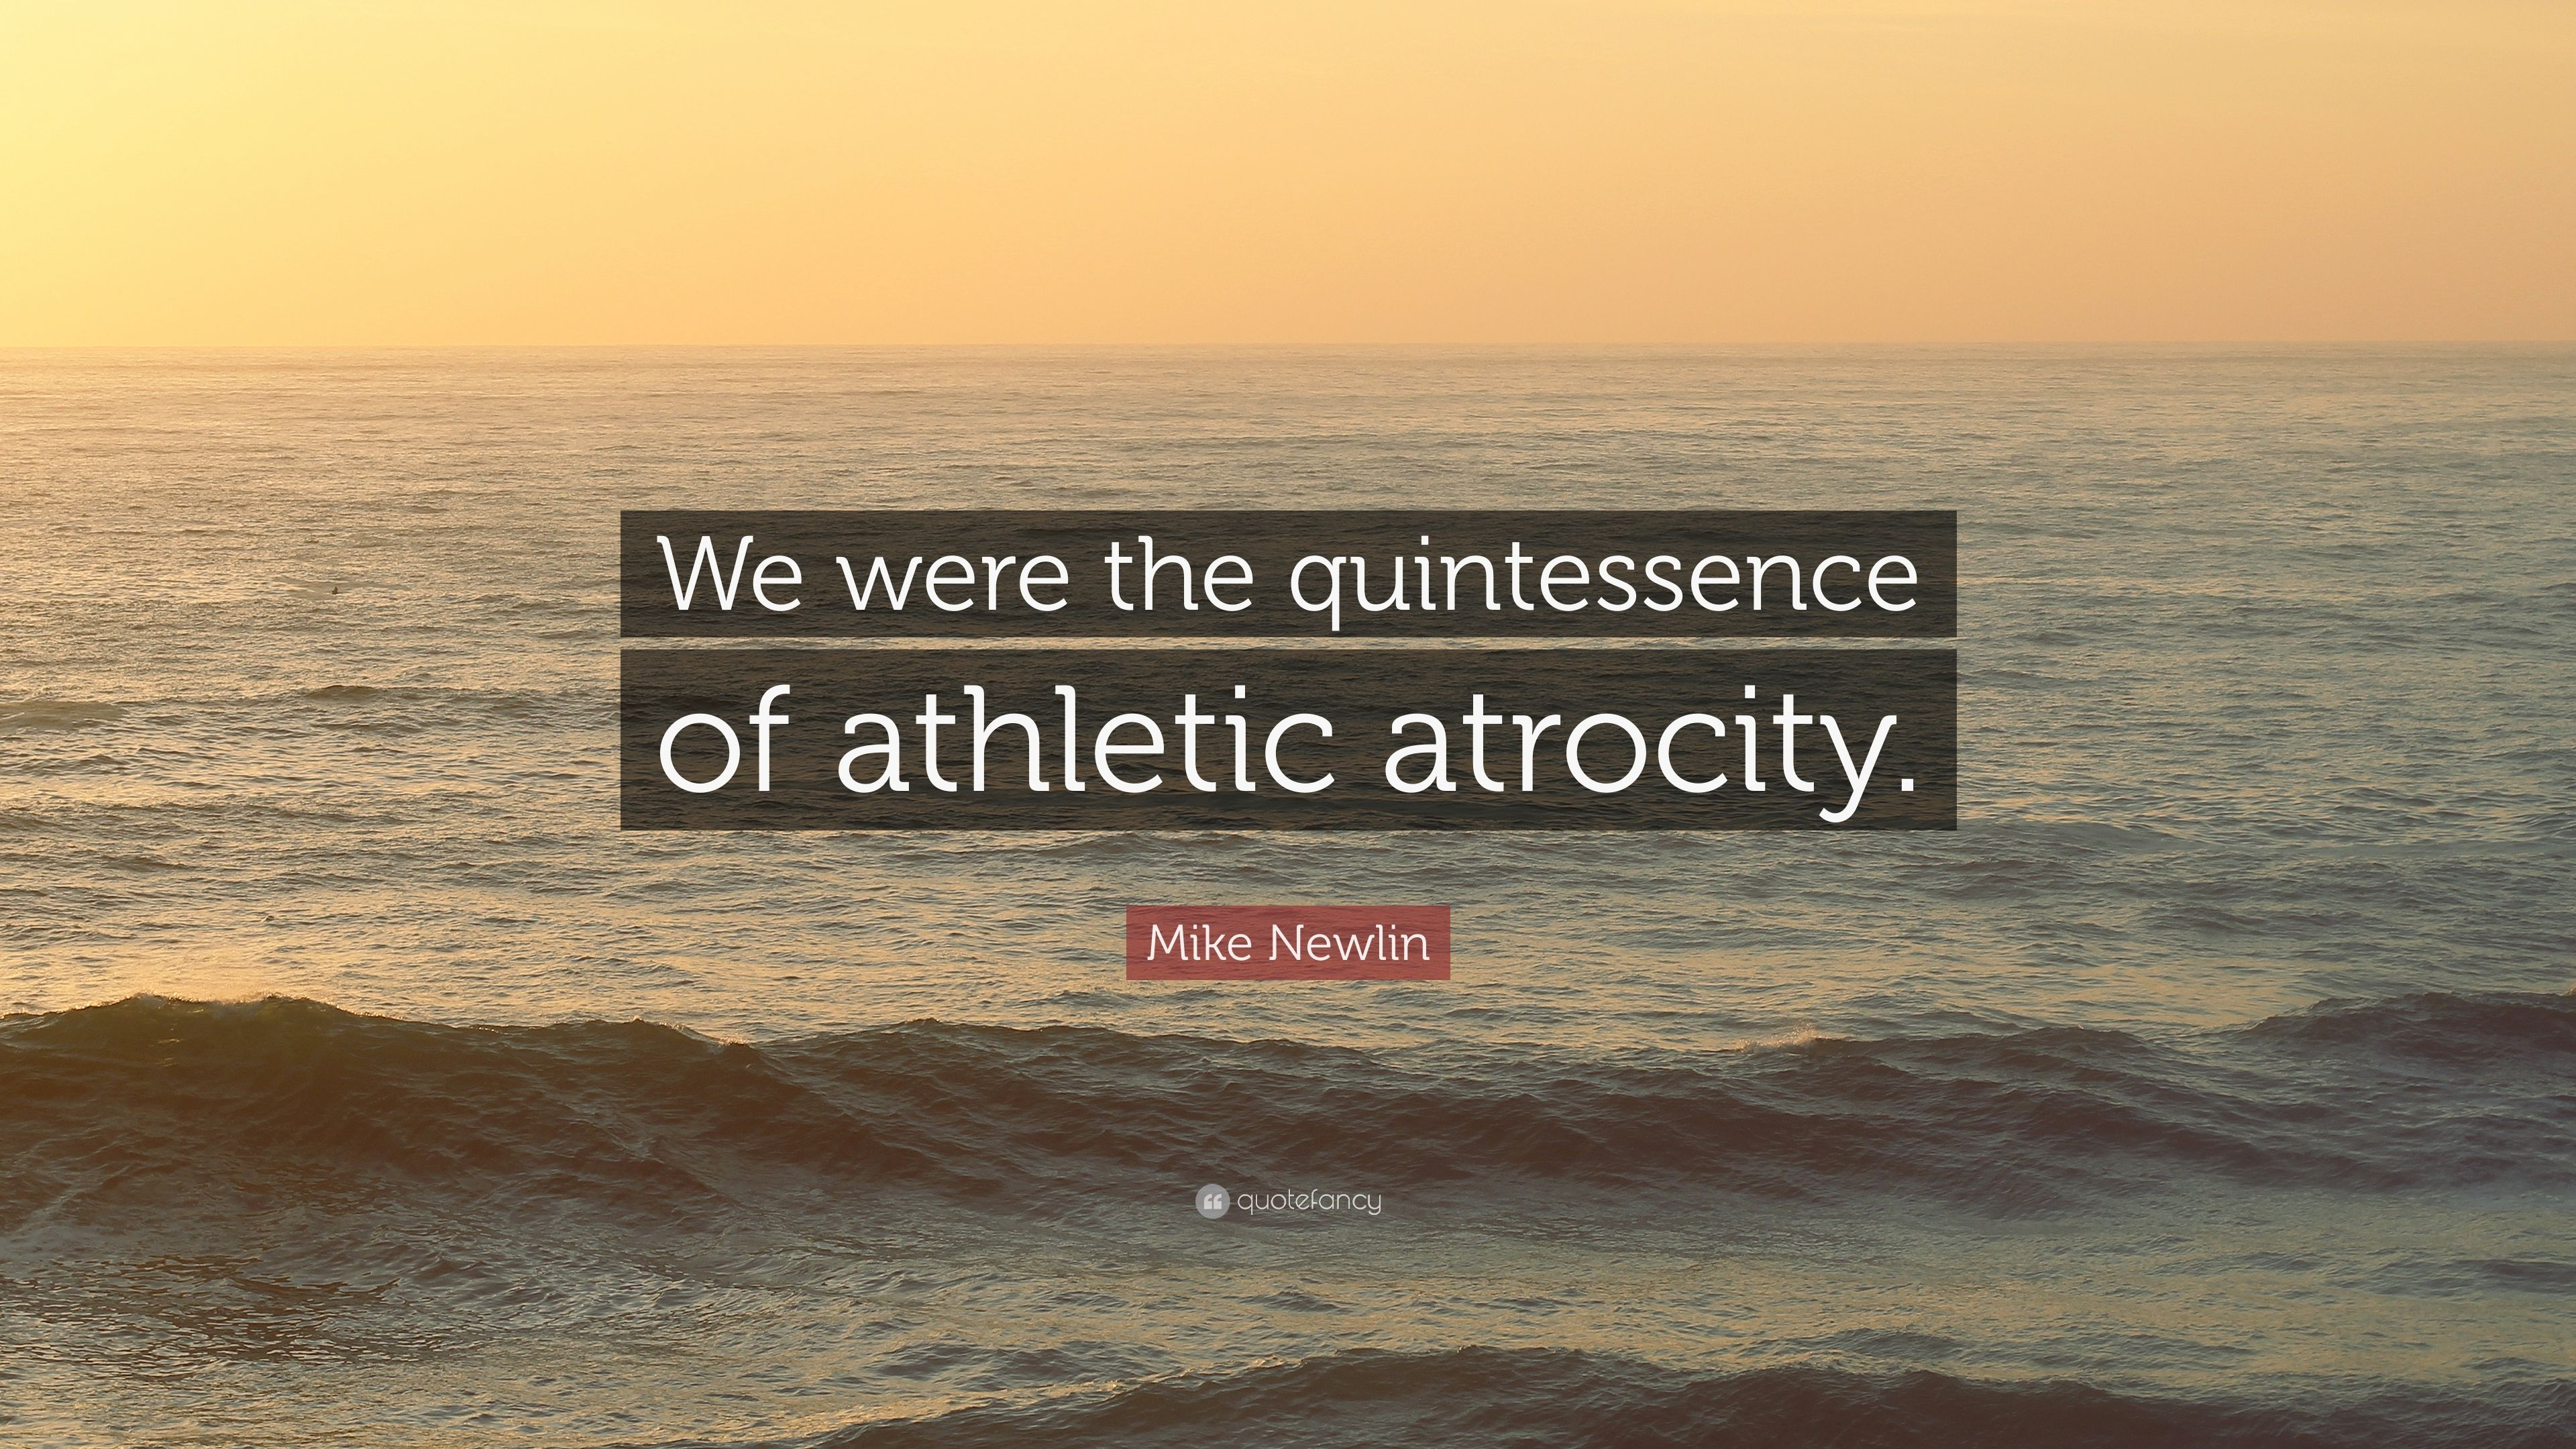 """Mike Newlin Quote """"We were the quintessence of athletic atrocity"""